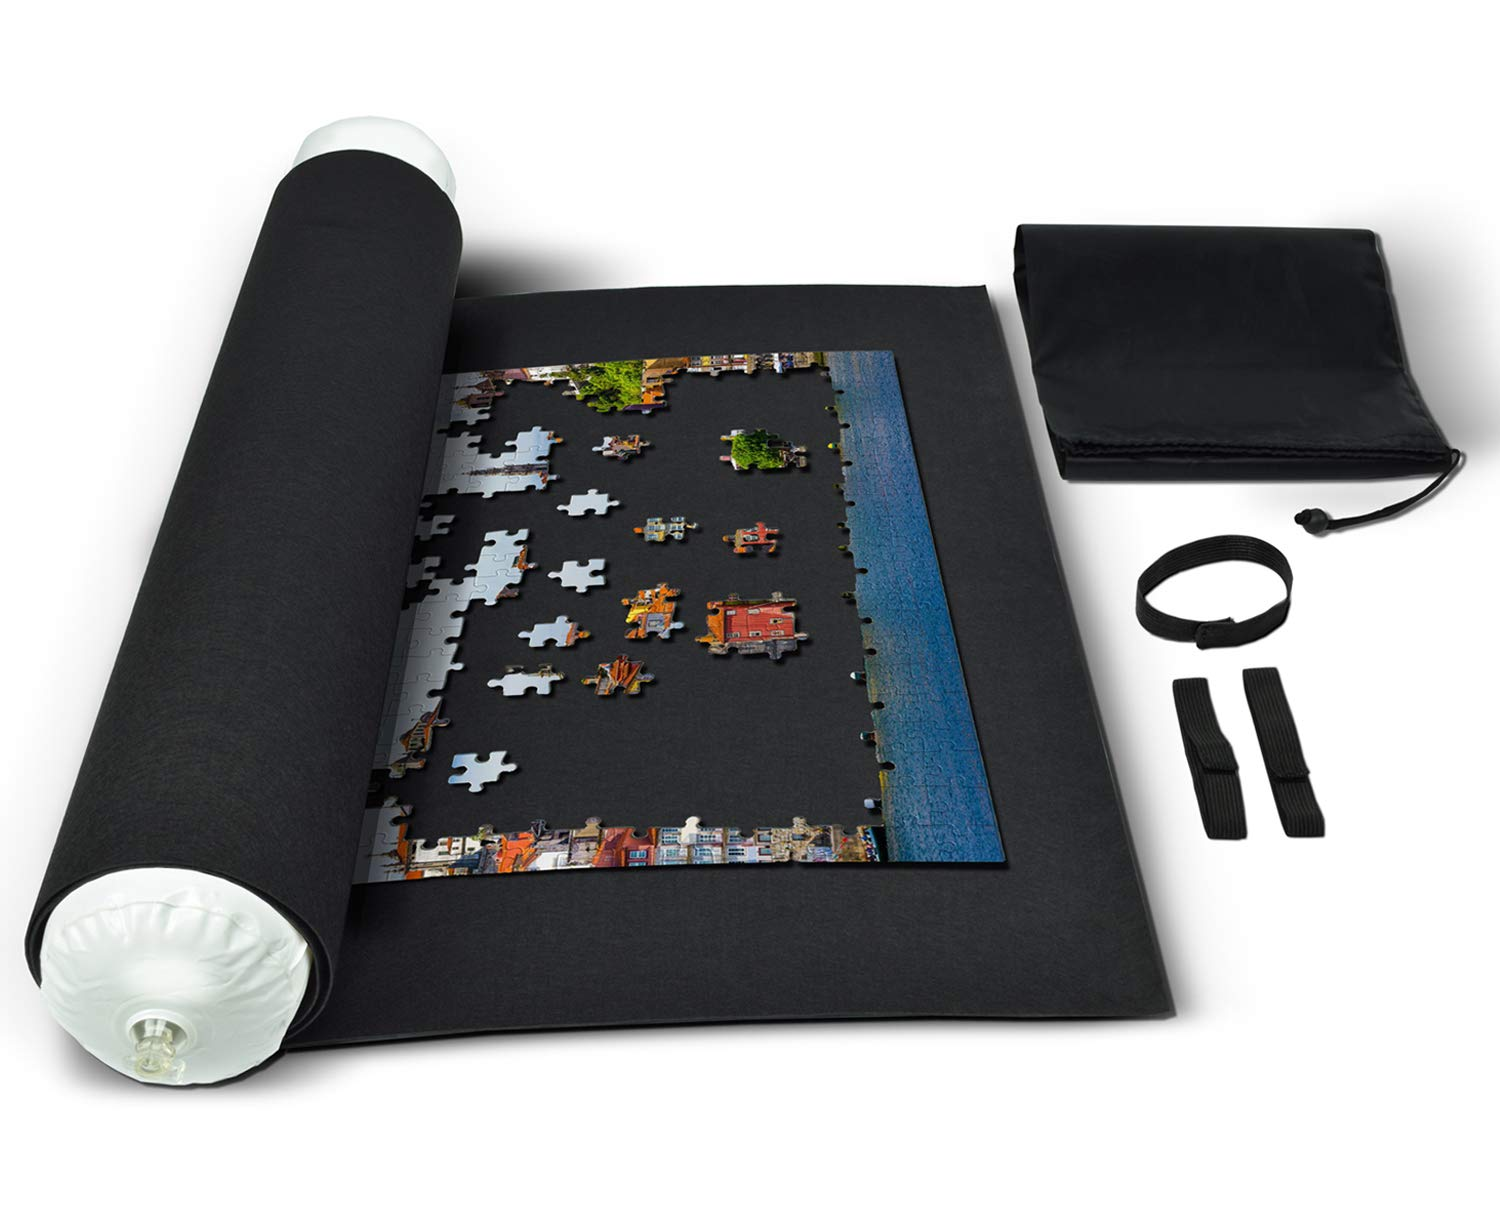 Roll Up Puzzle Mat for Jigsaw Puzzles Storage Black Felt with No Folded Creases by RNK Gaming